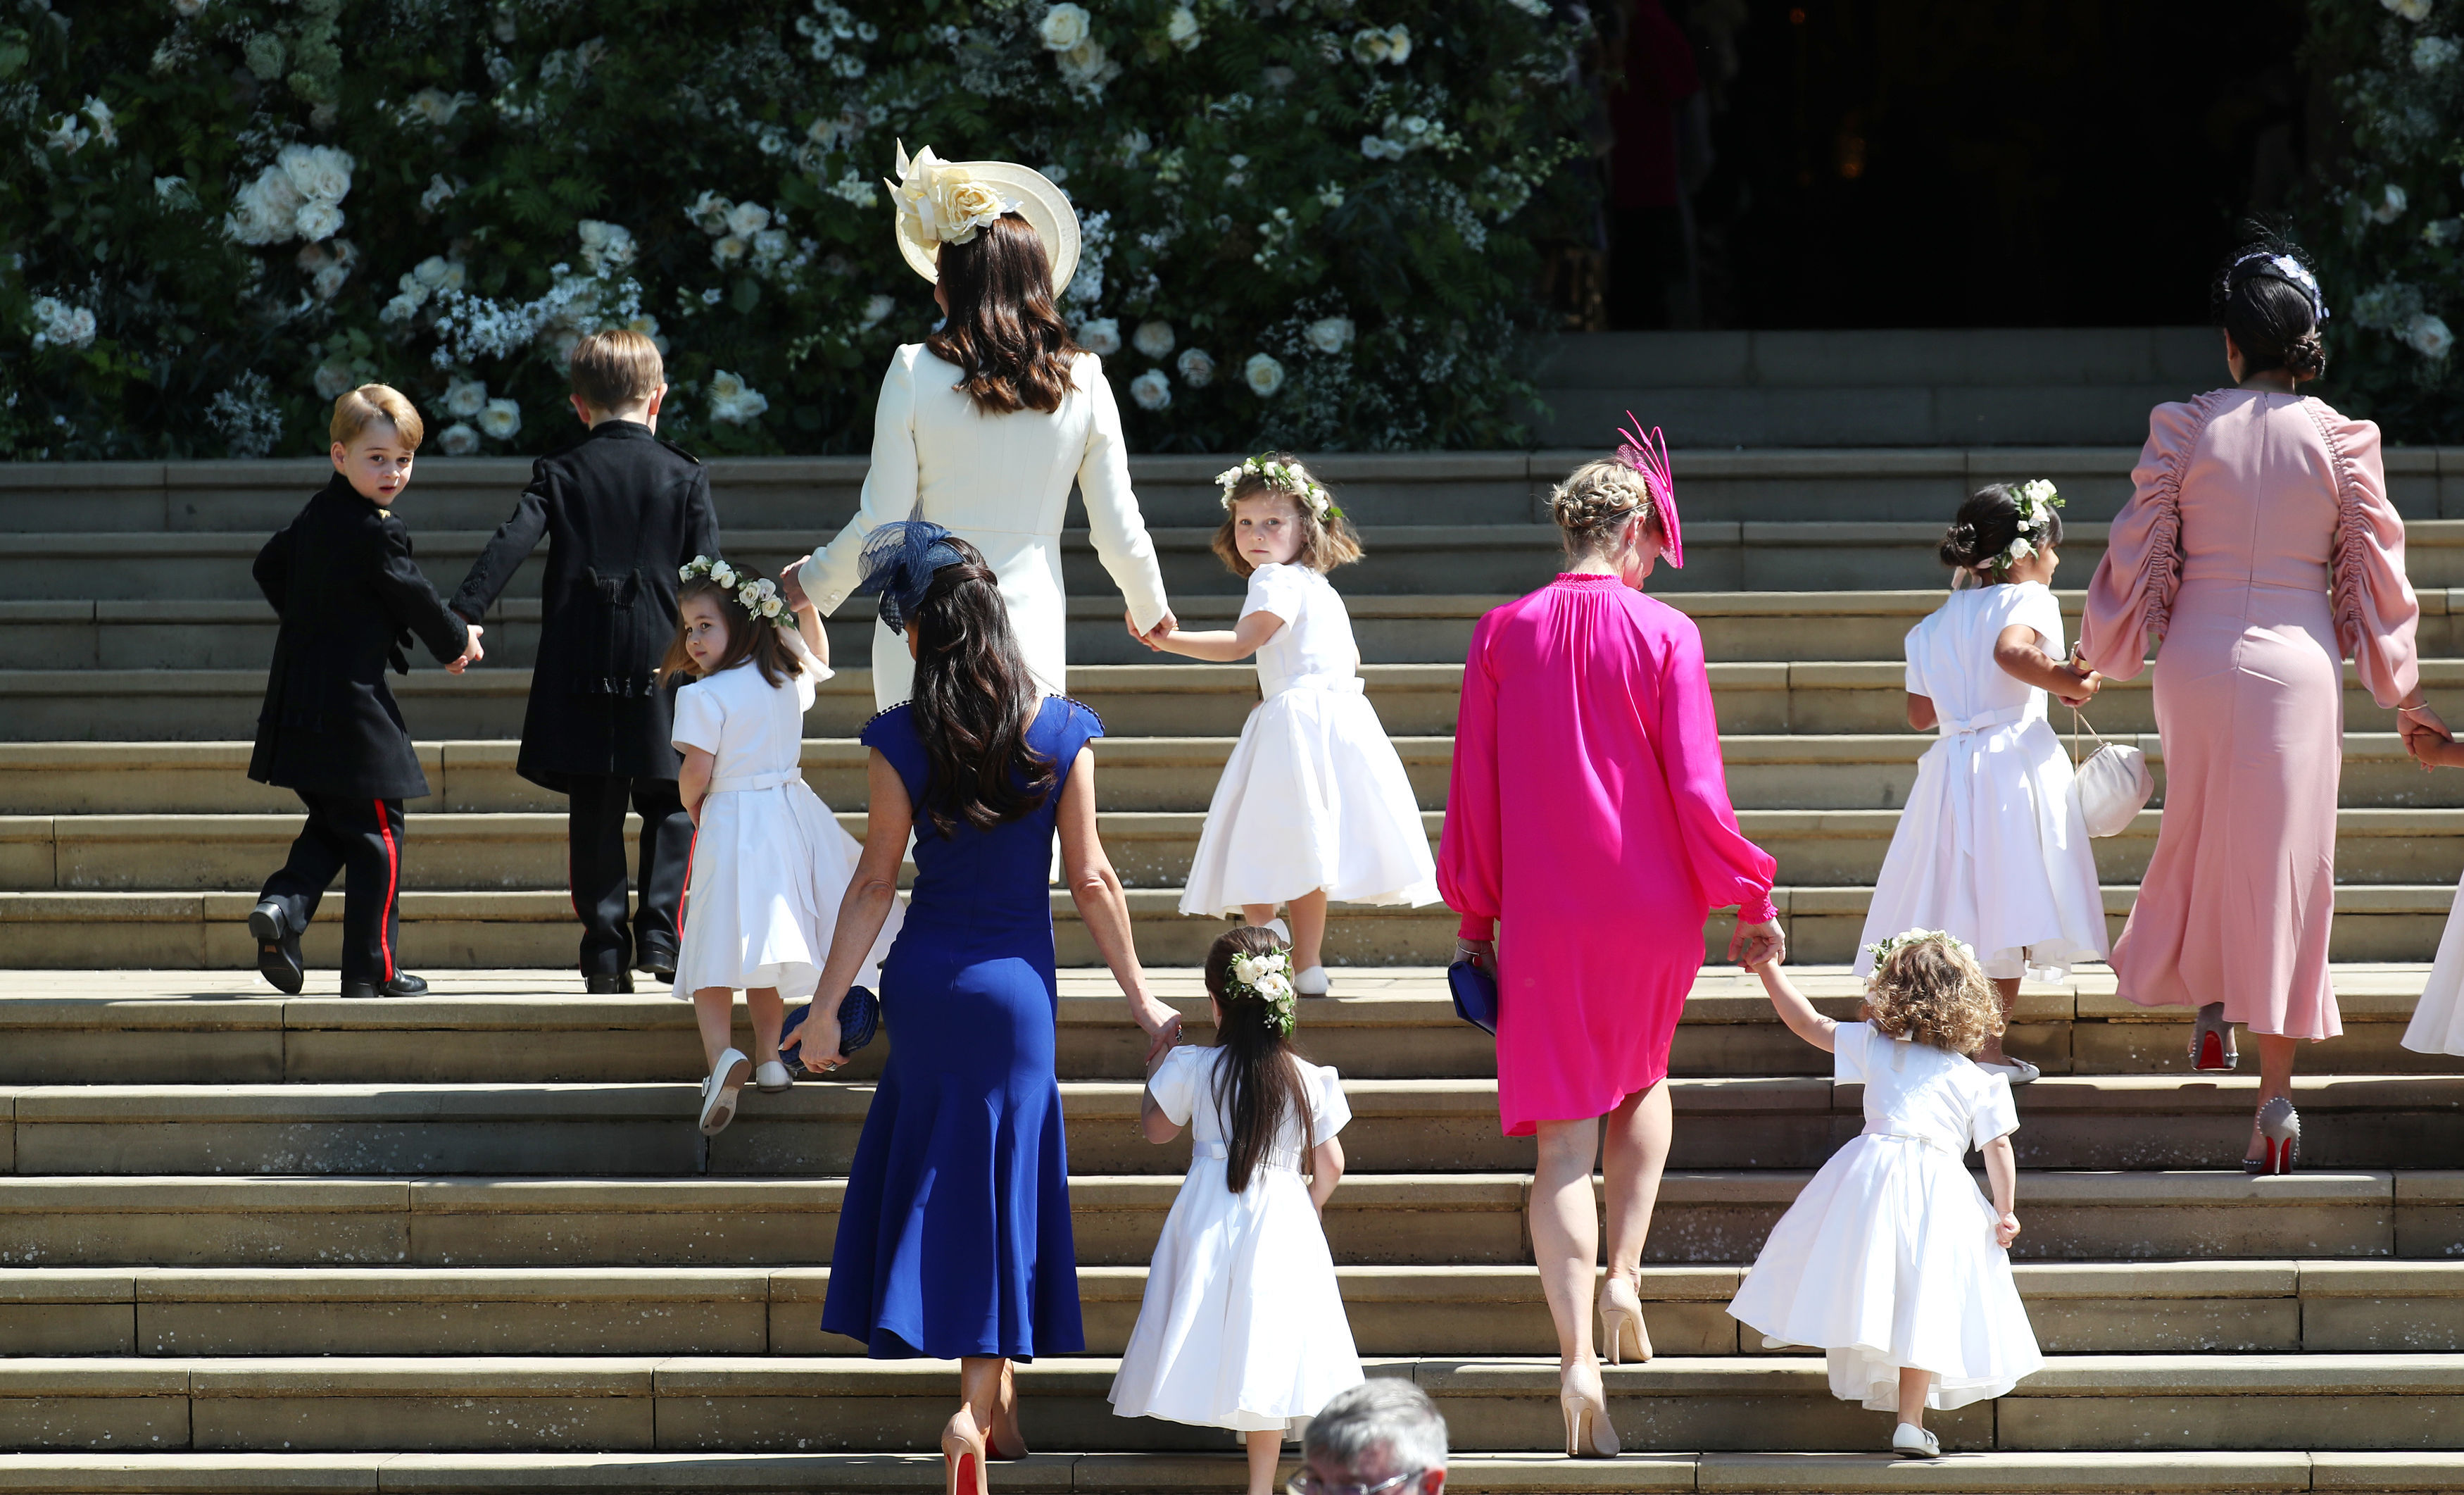 Real Royal Weddings: Prince George And Princess Charlotte Lead The Royal